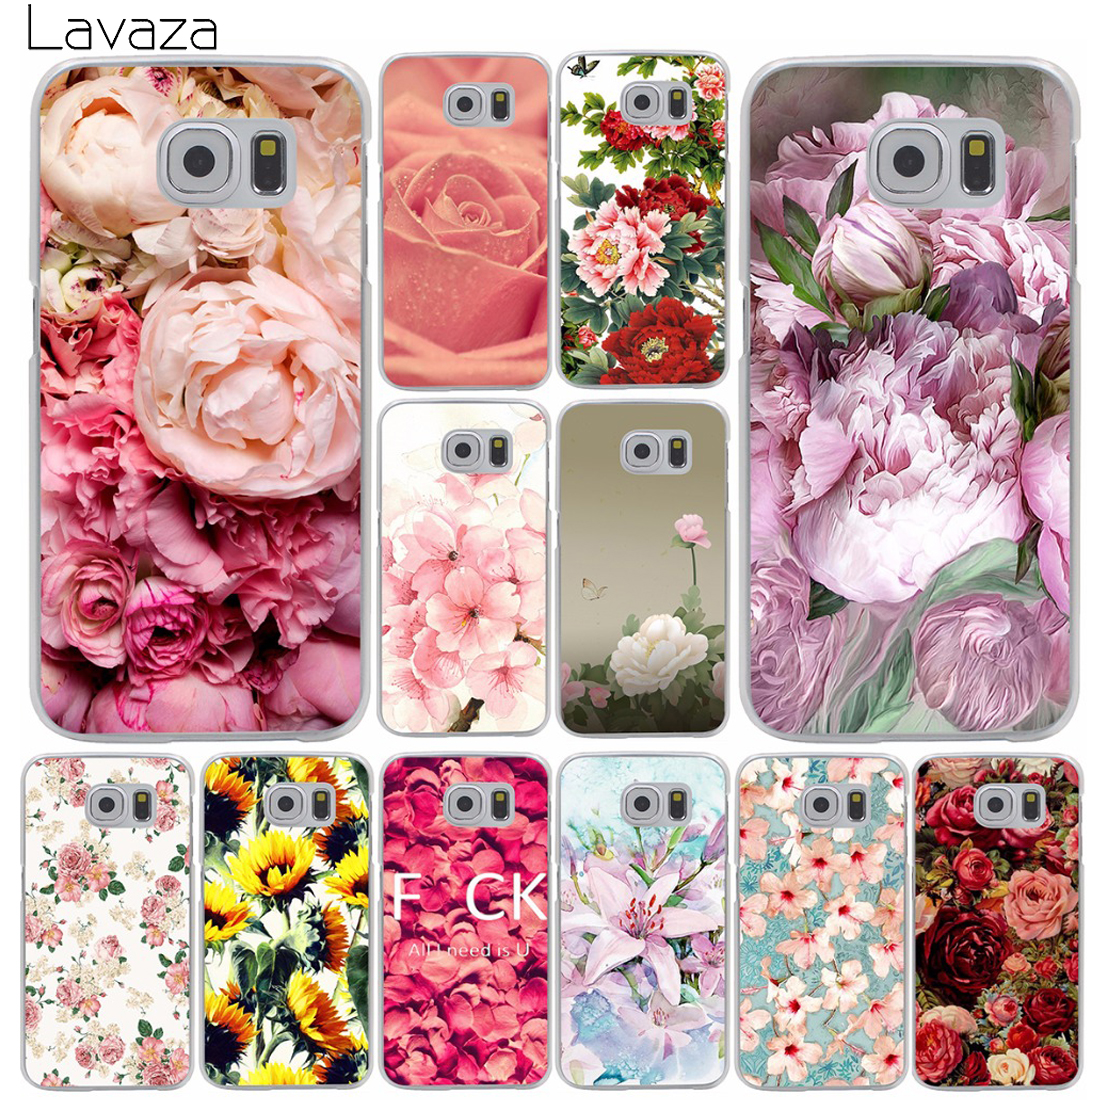 Lavaza Peony Sunflowe Rose Daisy Plants Flower phone Case for Samsung Galaxy S3 S4 S5 Mini S6 S7 S8 Edge Plus Grand Prime 2